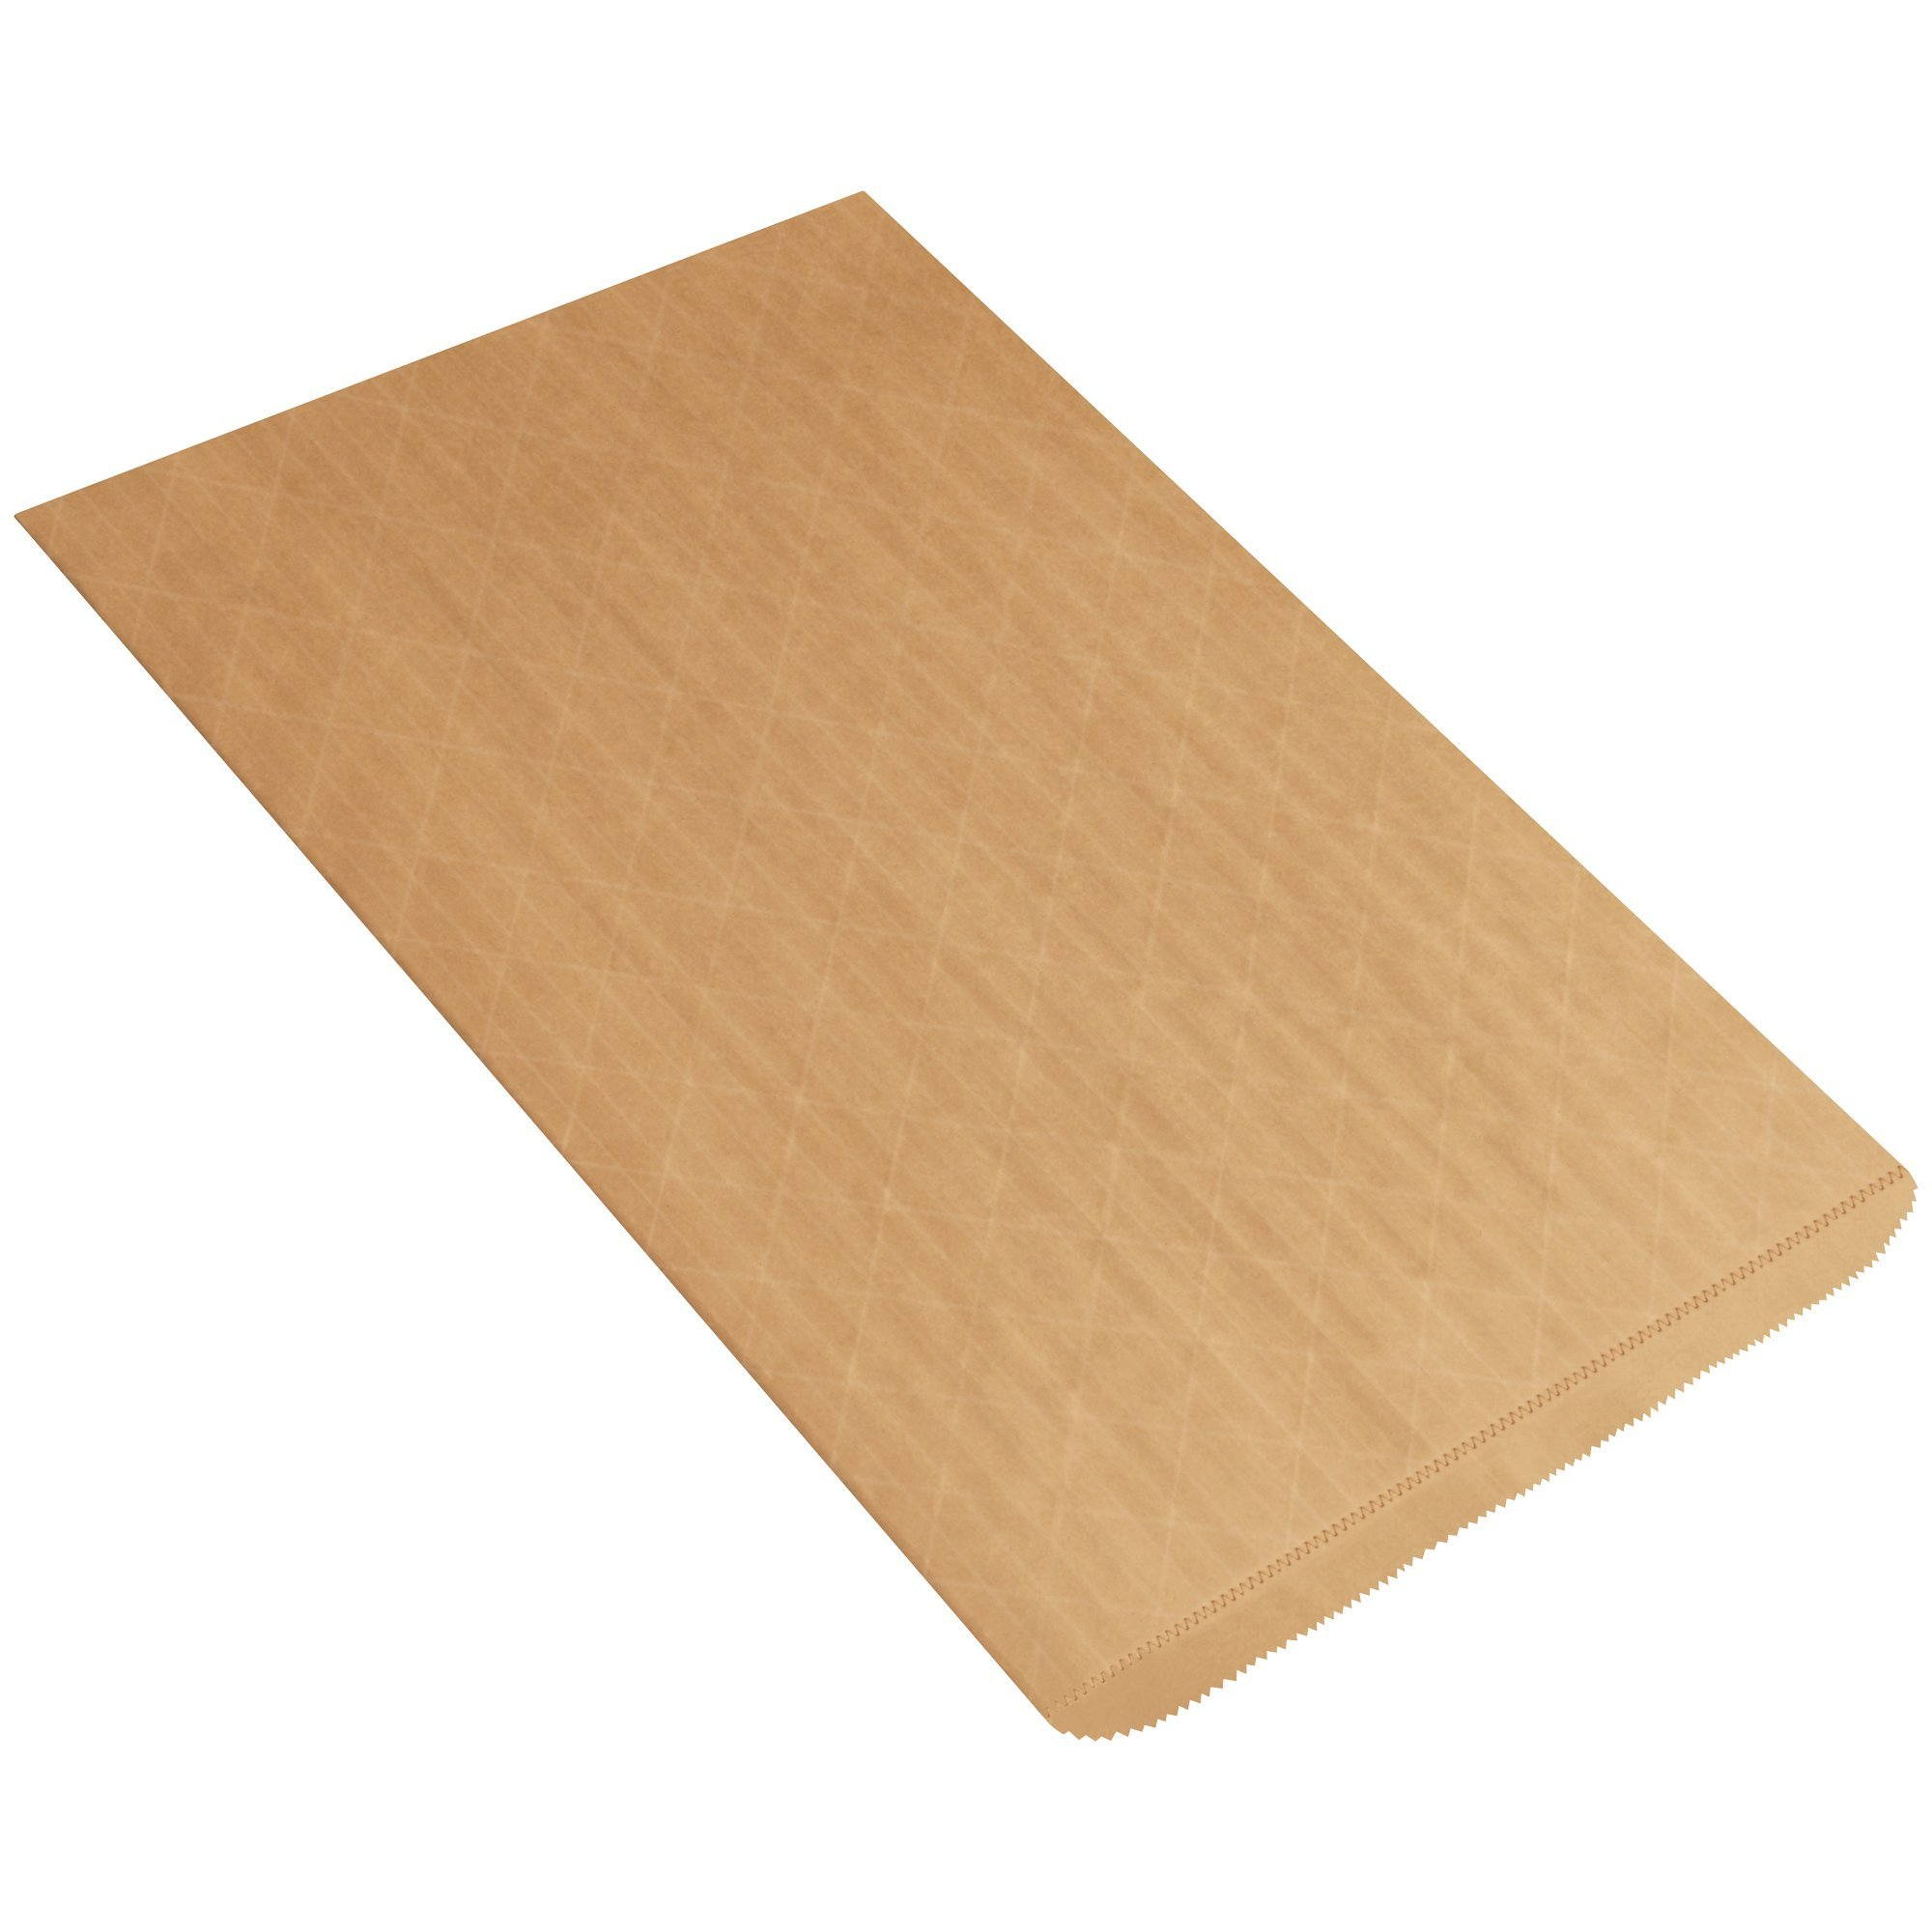 Top Pack Supply Nylon Reinforced Mailers, 6, 12 1/2'' x 19'', Kraft (Pack of 250)